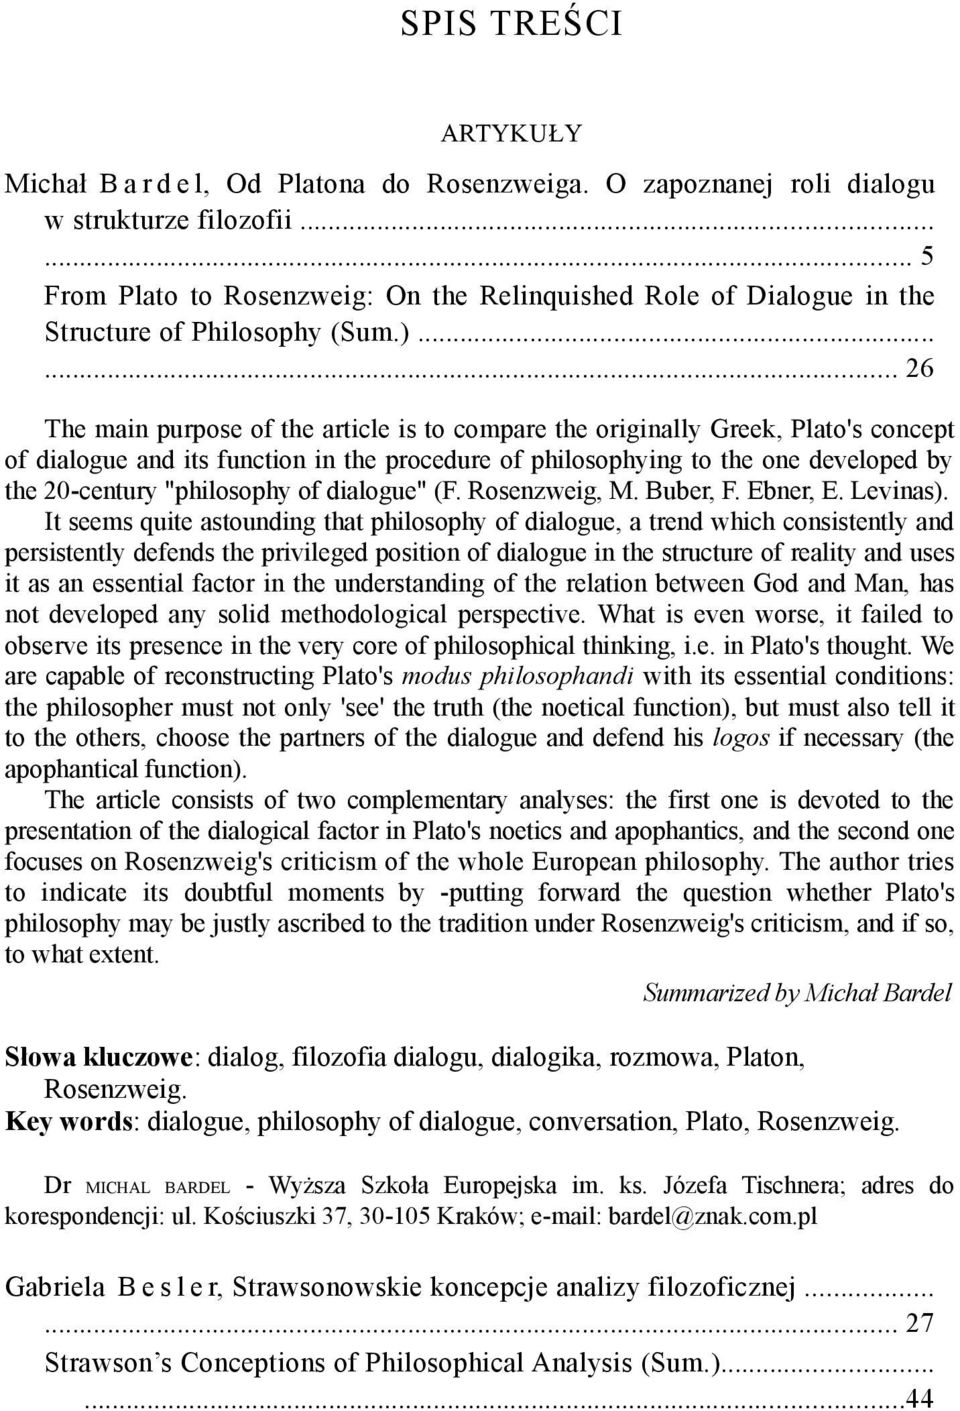 ..... 26 The main purpose of the article is to compare the originally Greek, Plato's concept of dialogue and its function in the procedure of philosophying to the one developed by the 20-century